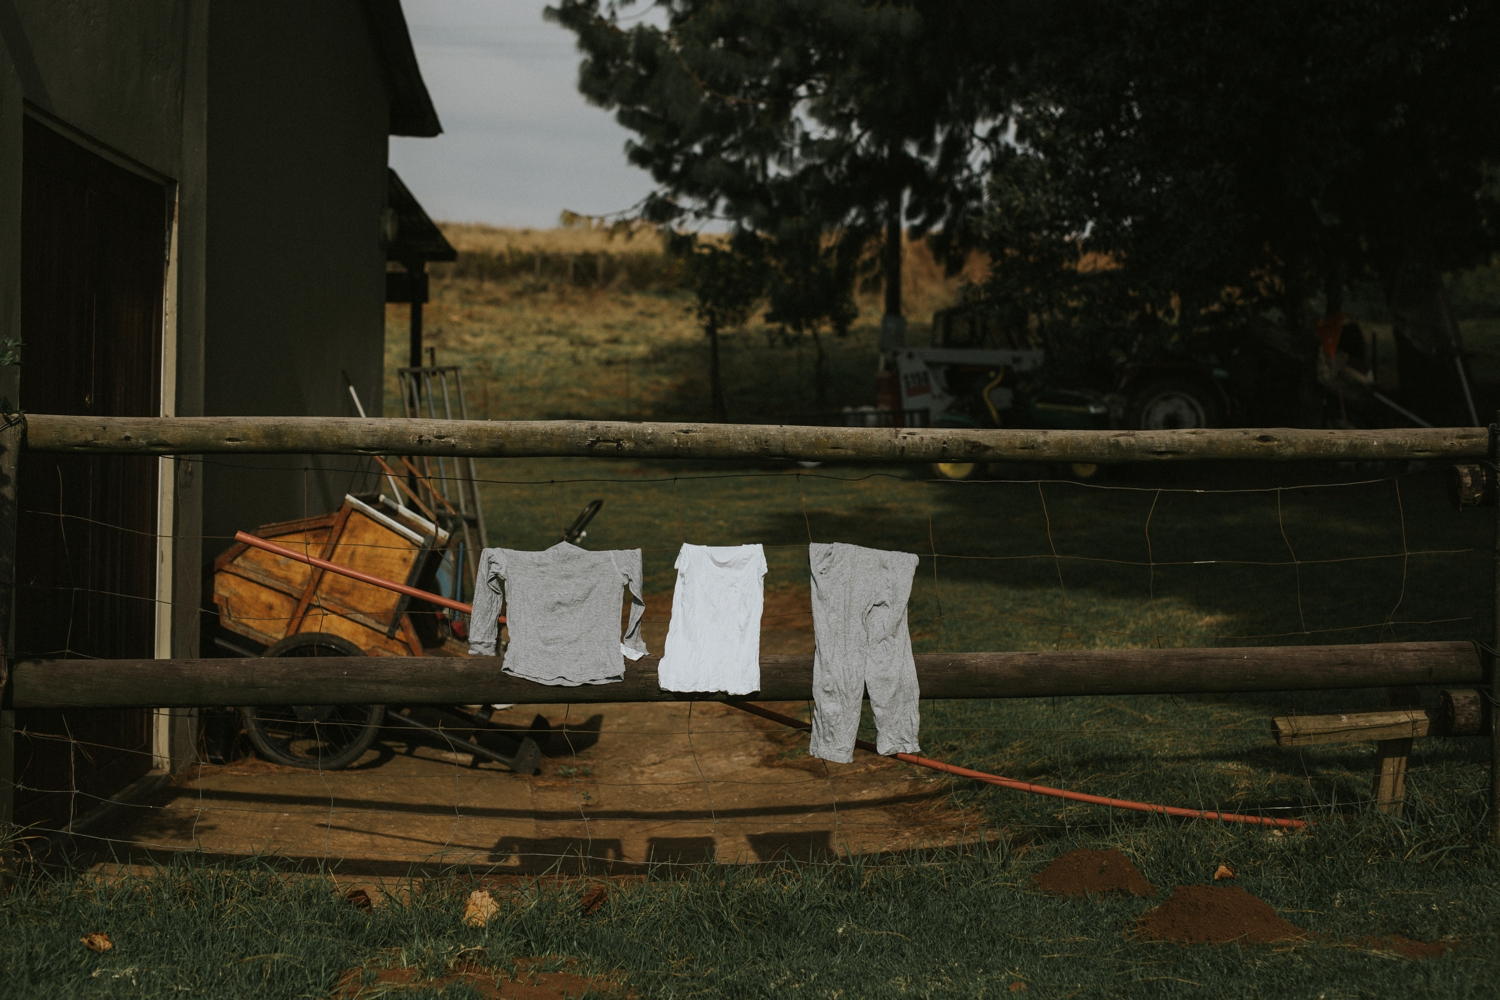 Candid Photo Of Washing On Line At Farm Wedding Venue Vancouver